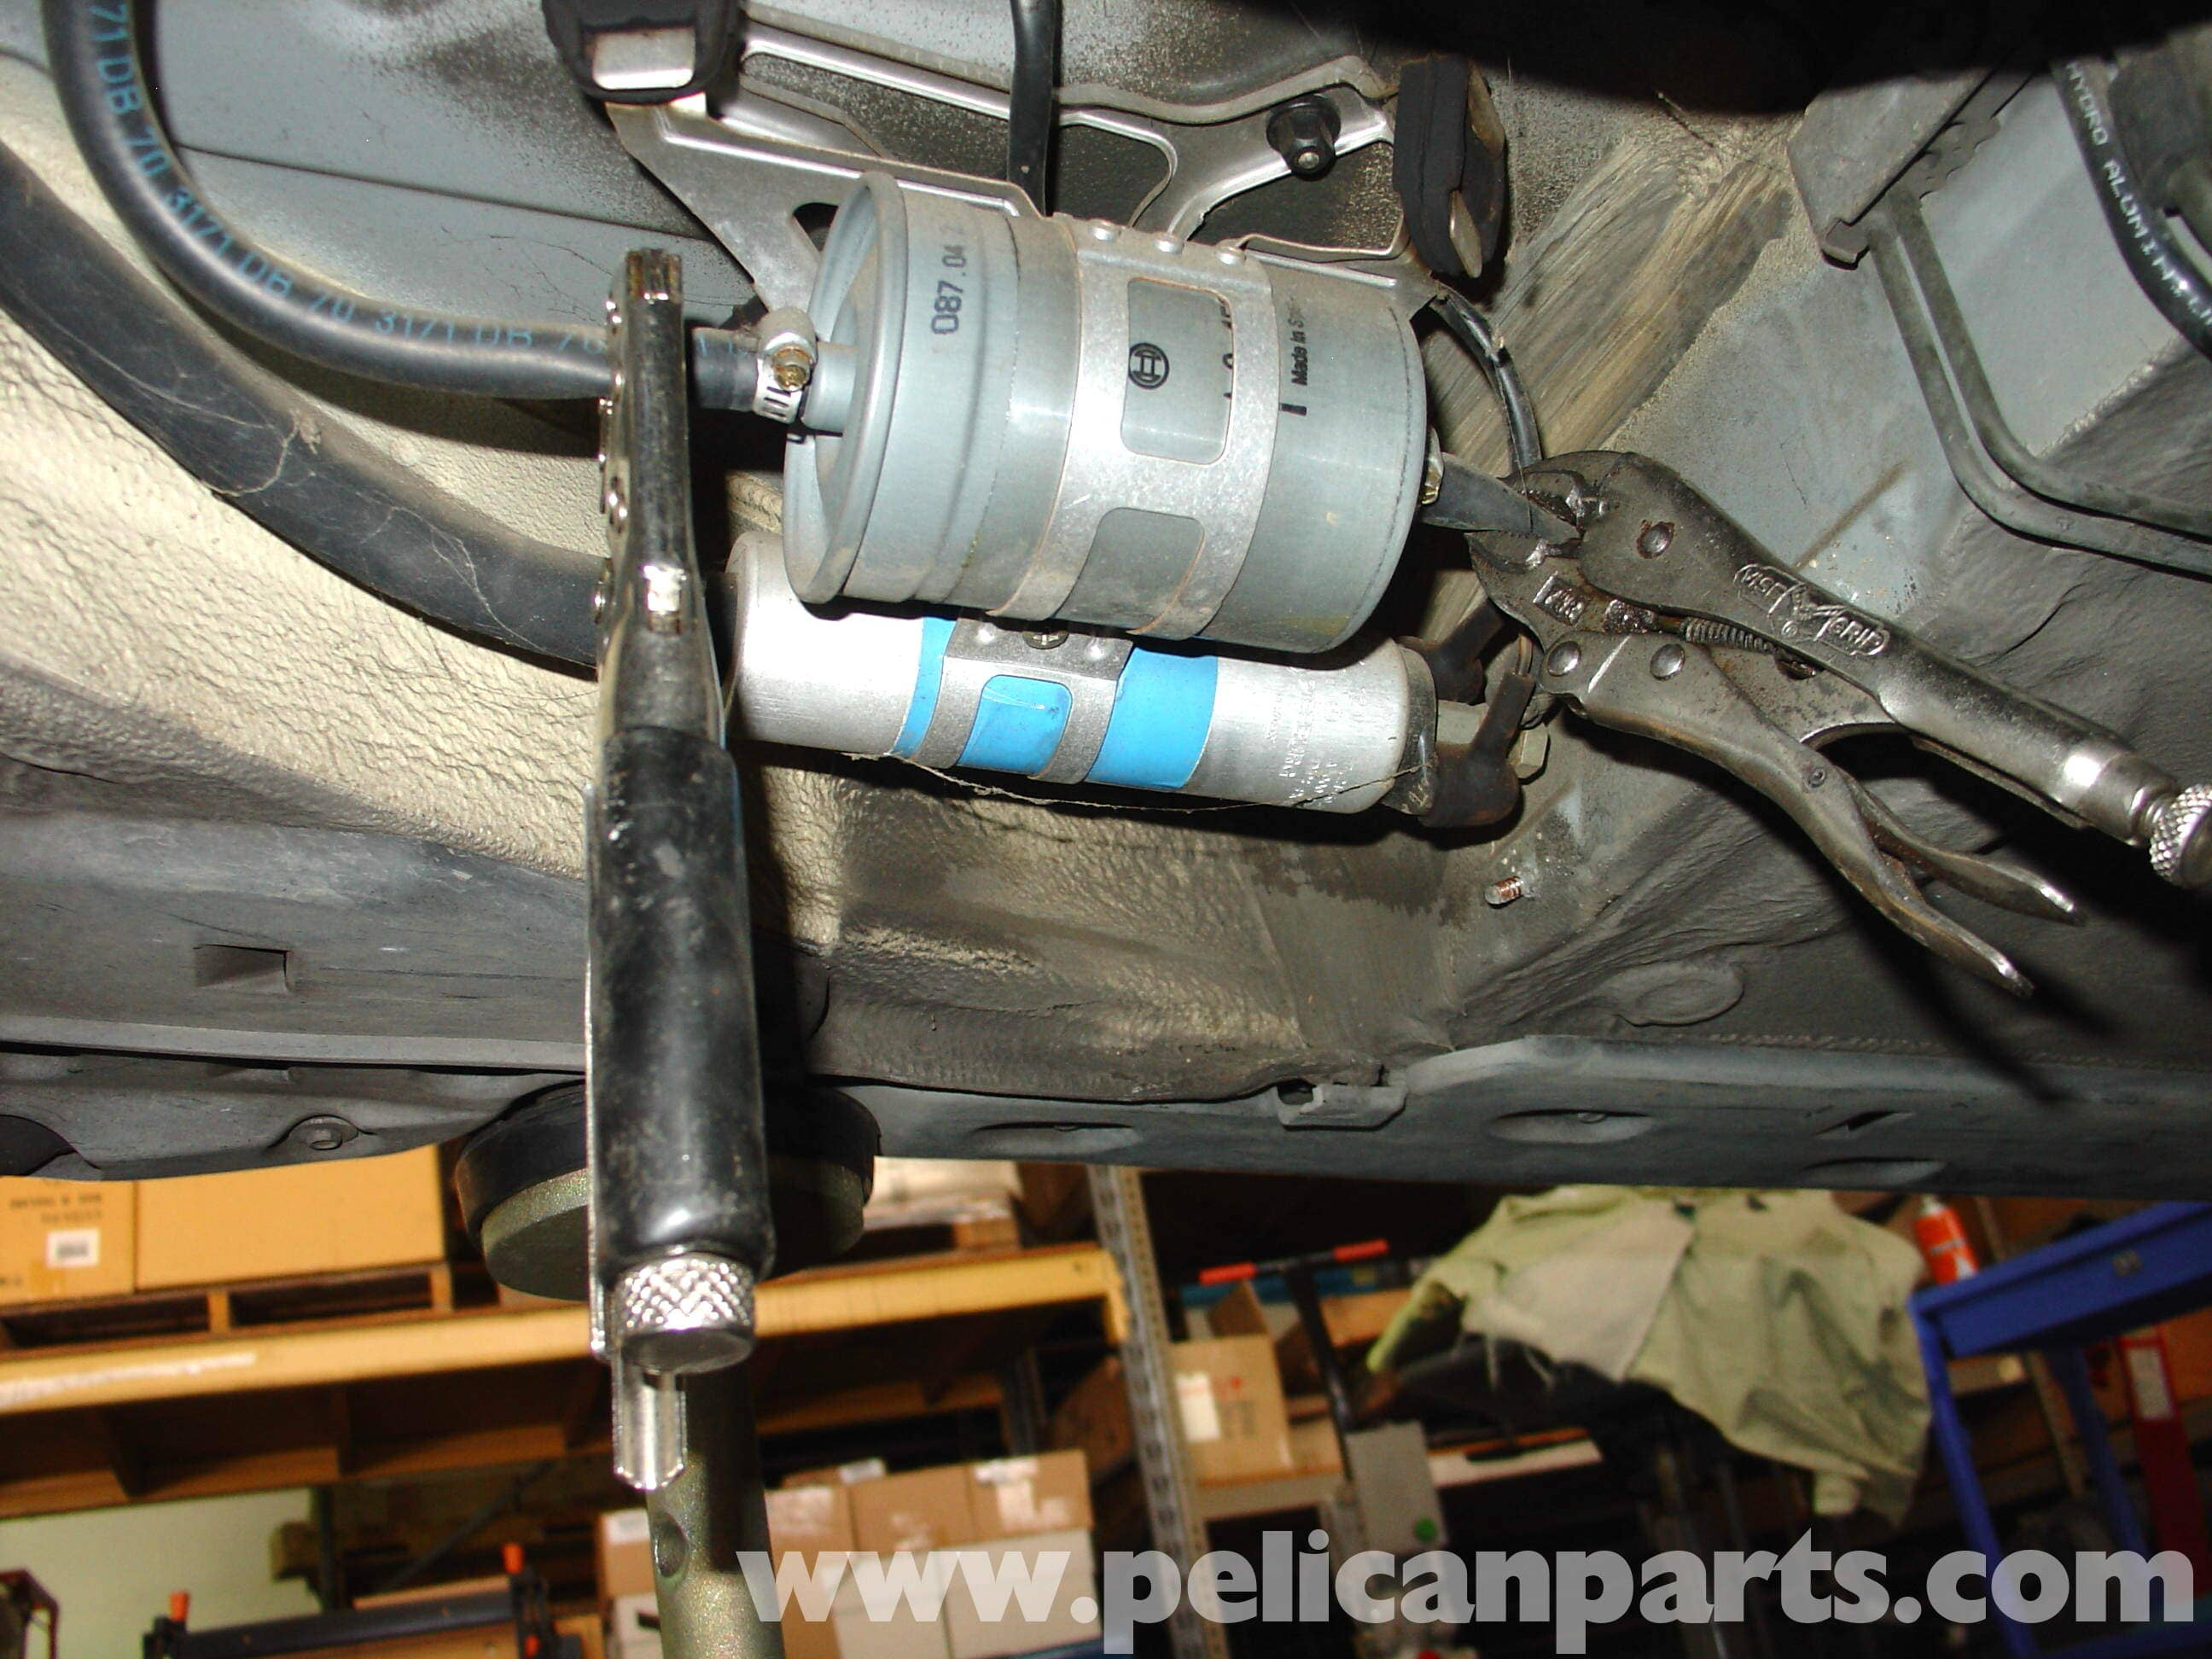 1990 Honda Accord Fuel Filter Diagram Trusted Wiring Wrangler Mercedes Benz W210 Replacement 1996 03 E320 E420 Jeep